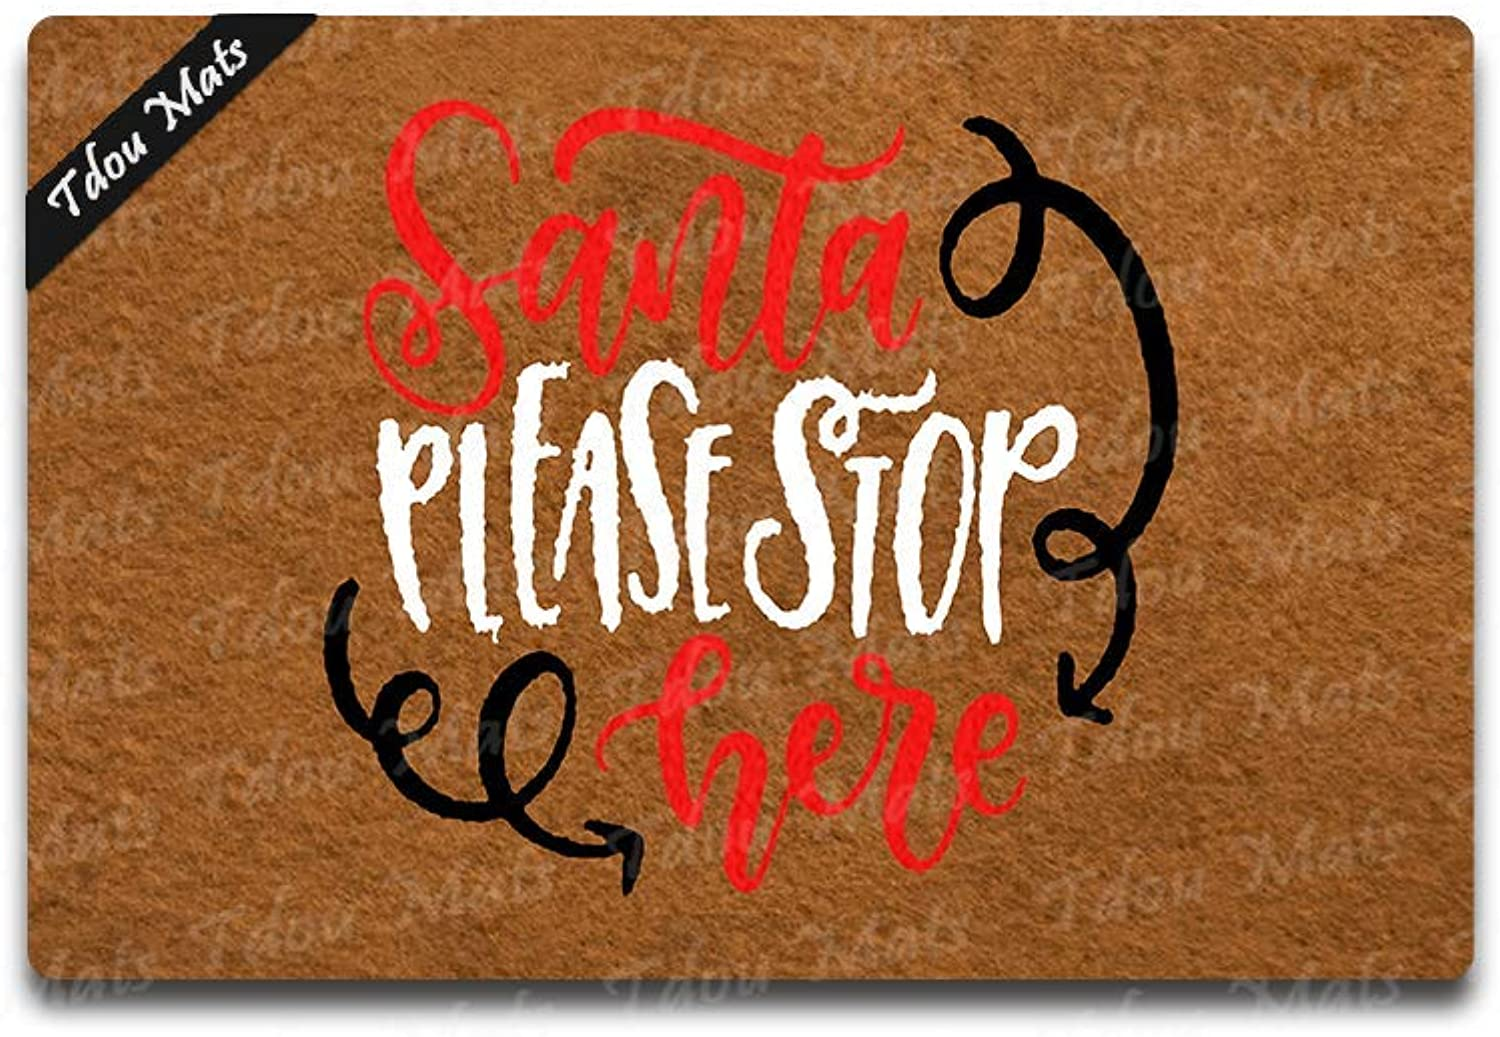 Tdou Santa Please Stop Here Doormat Funny Doormat Christmas Decor Winter Decor Home Decor Welcome Mat Housewarming Gift23.6 x 15.7